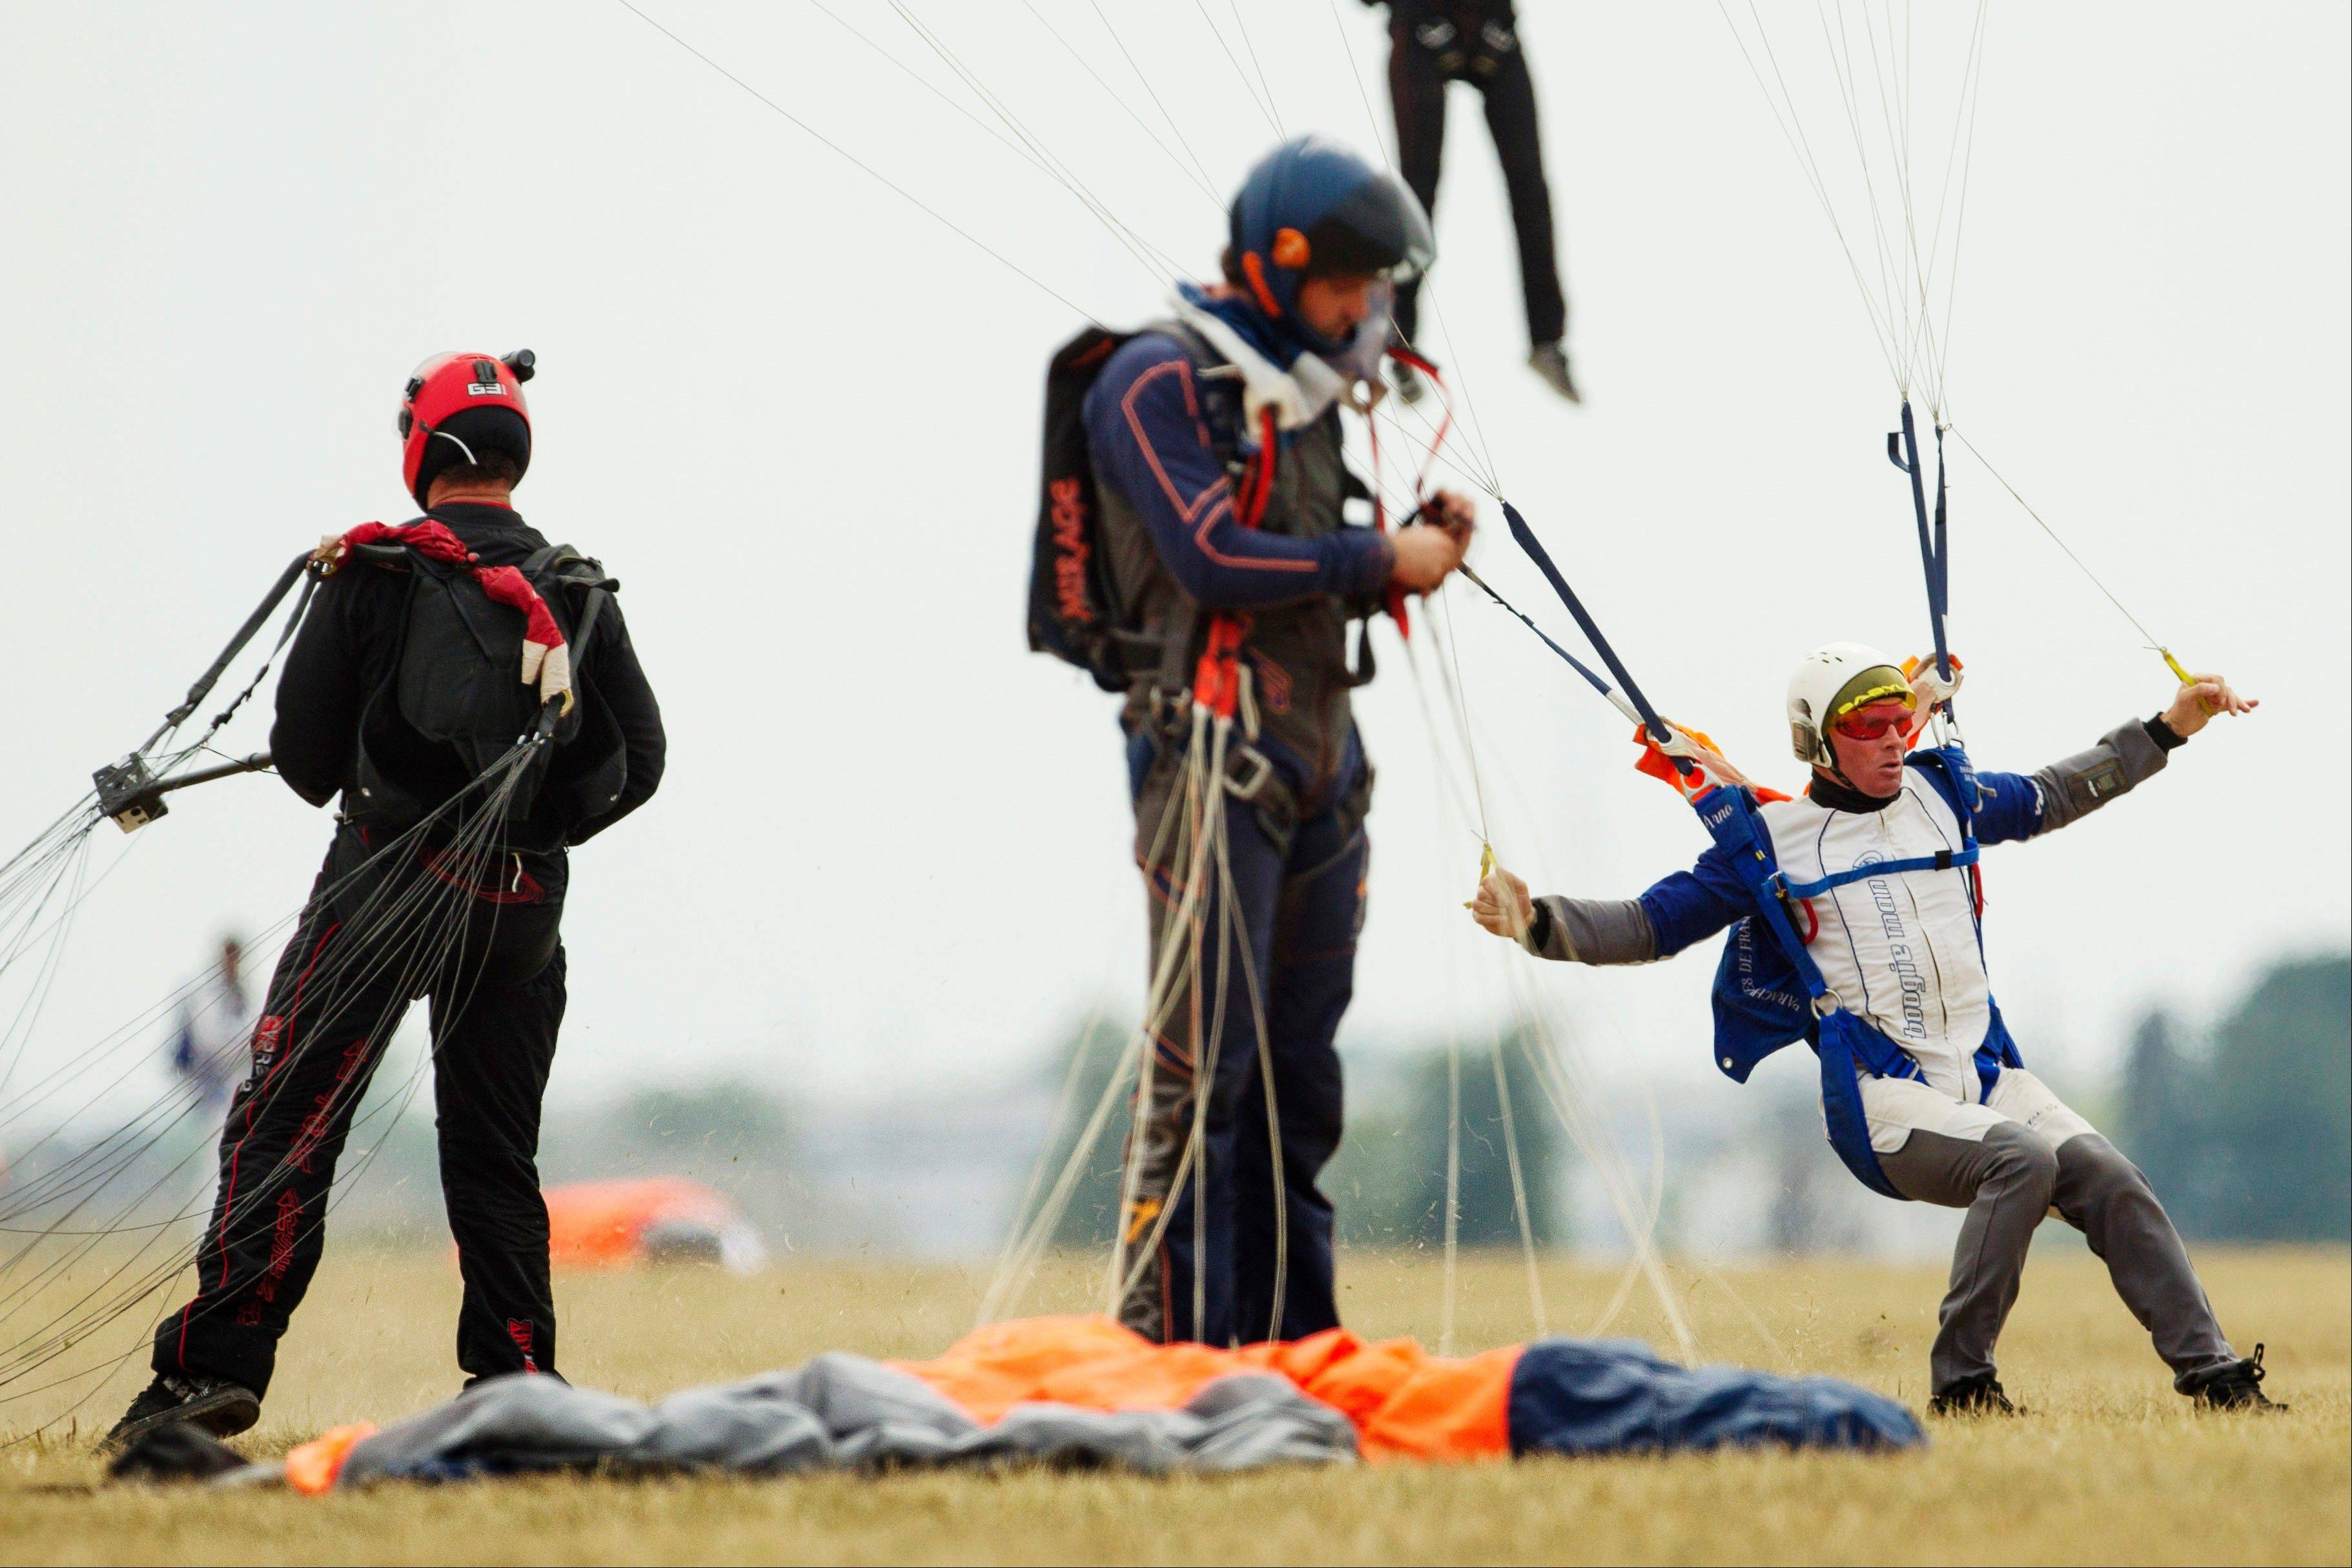 Skydivers land in a drop zone during practice Thursday in Ottawa, Ill. More than 140 sky divers reaching speeds in excess of 180 mph gathered in the skies over central Illinois to set a new world record in vertical flying.